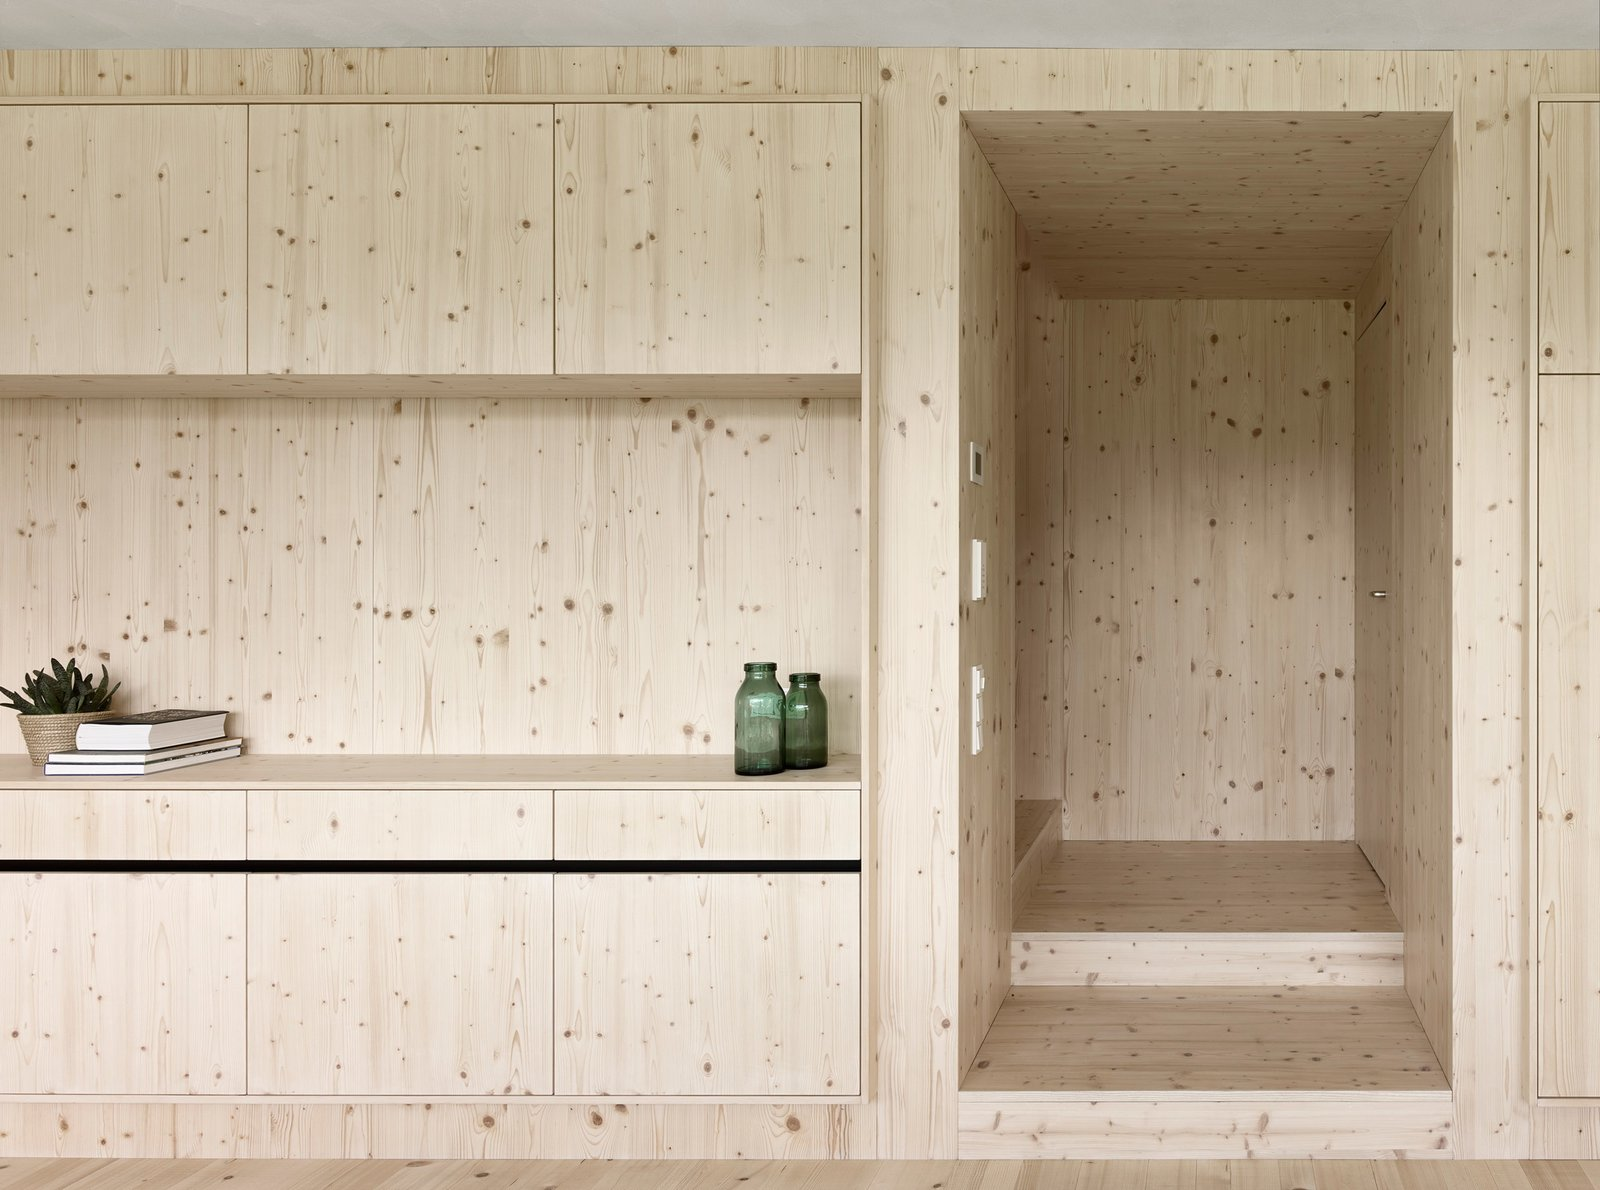 """Built-in shelving crafted by local carpenters distinguish the living area from the service zone, where appliances and utilities are stored. """"Because of the integrated shelving, no additional furniture is needed for storage,"""" Matt says.  Composition from House For Julia Björn"""